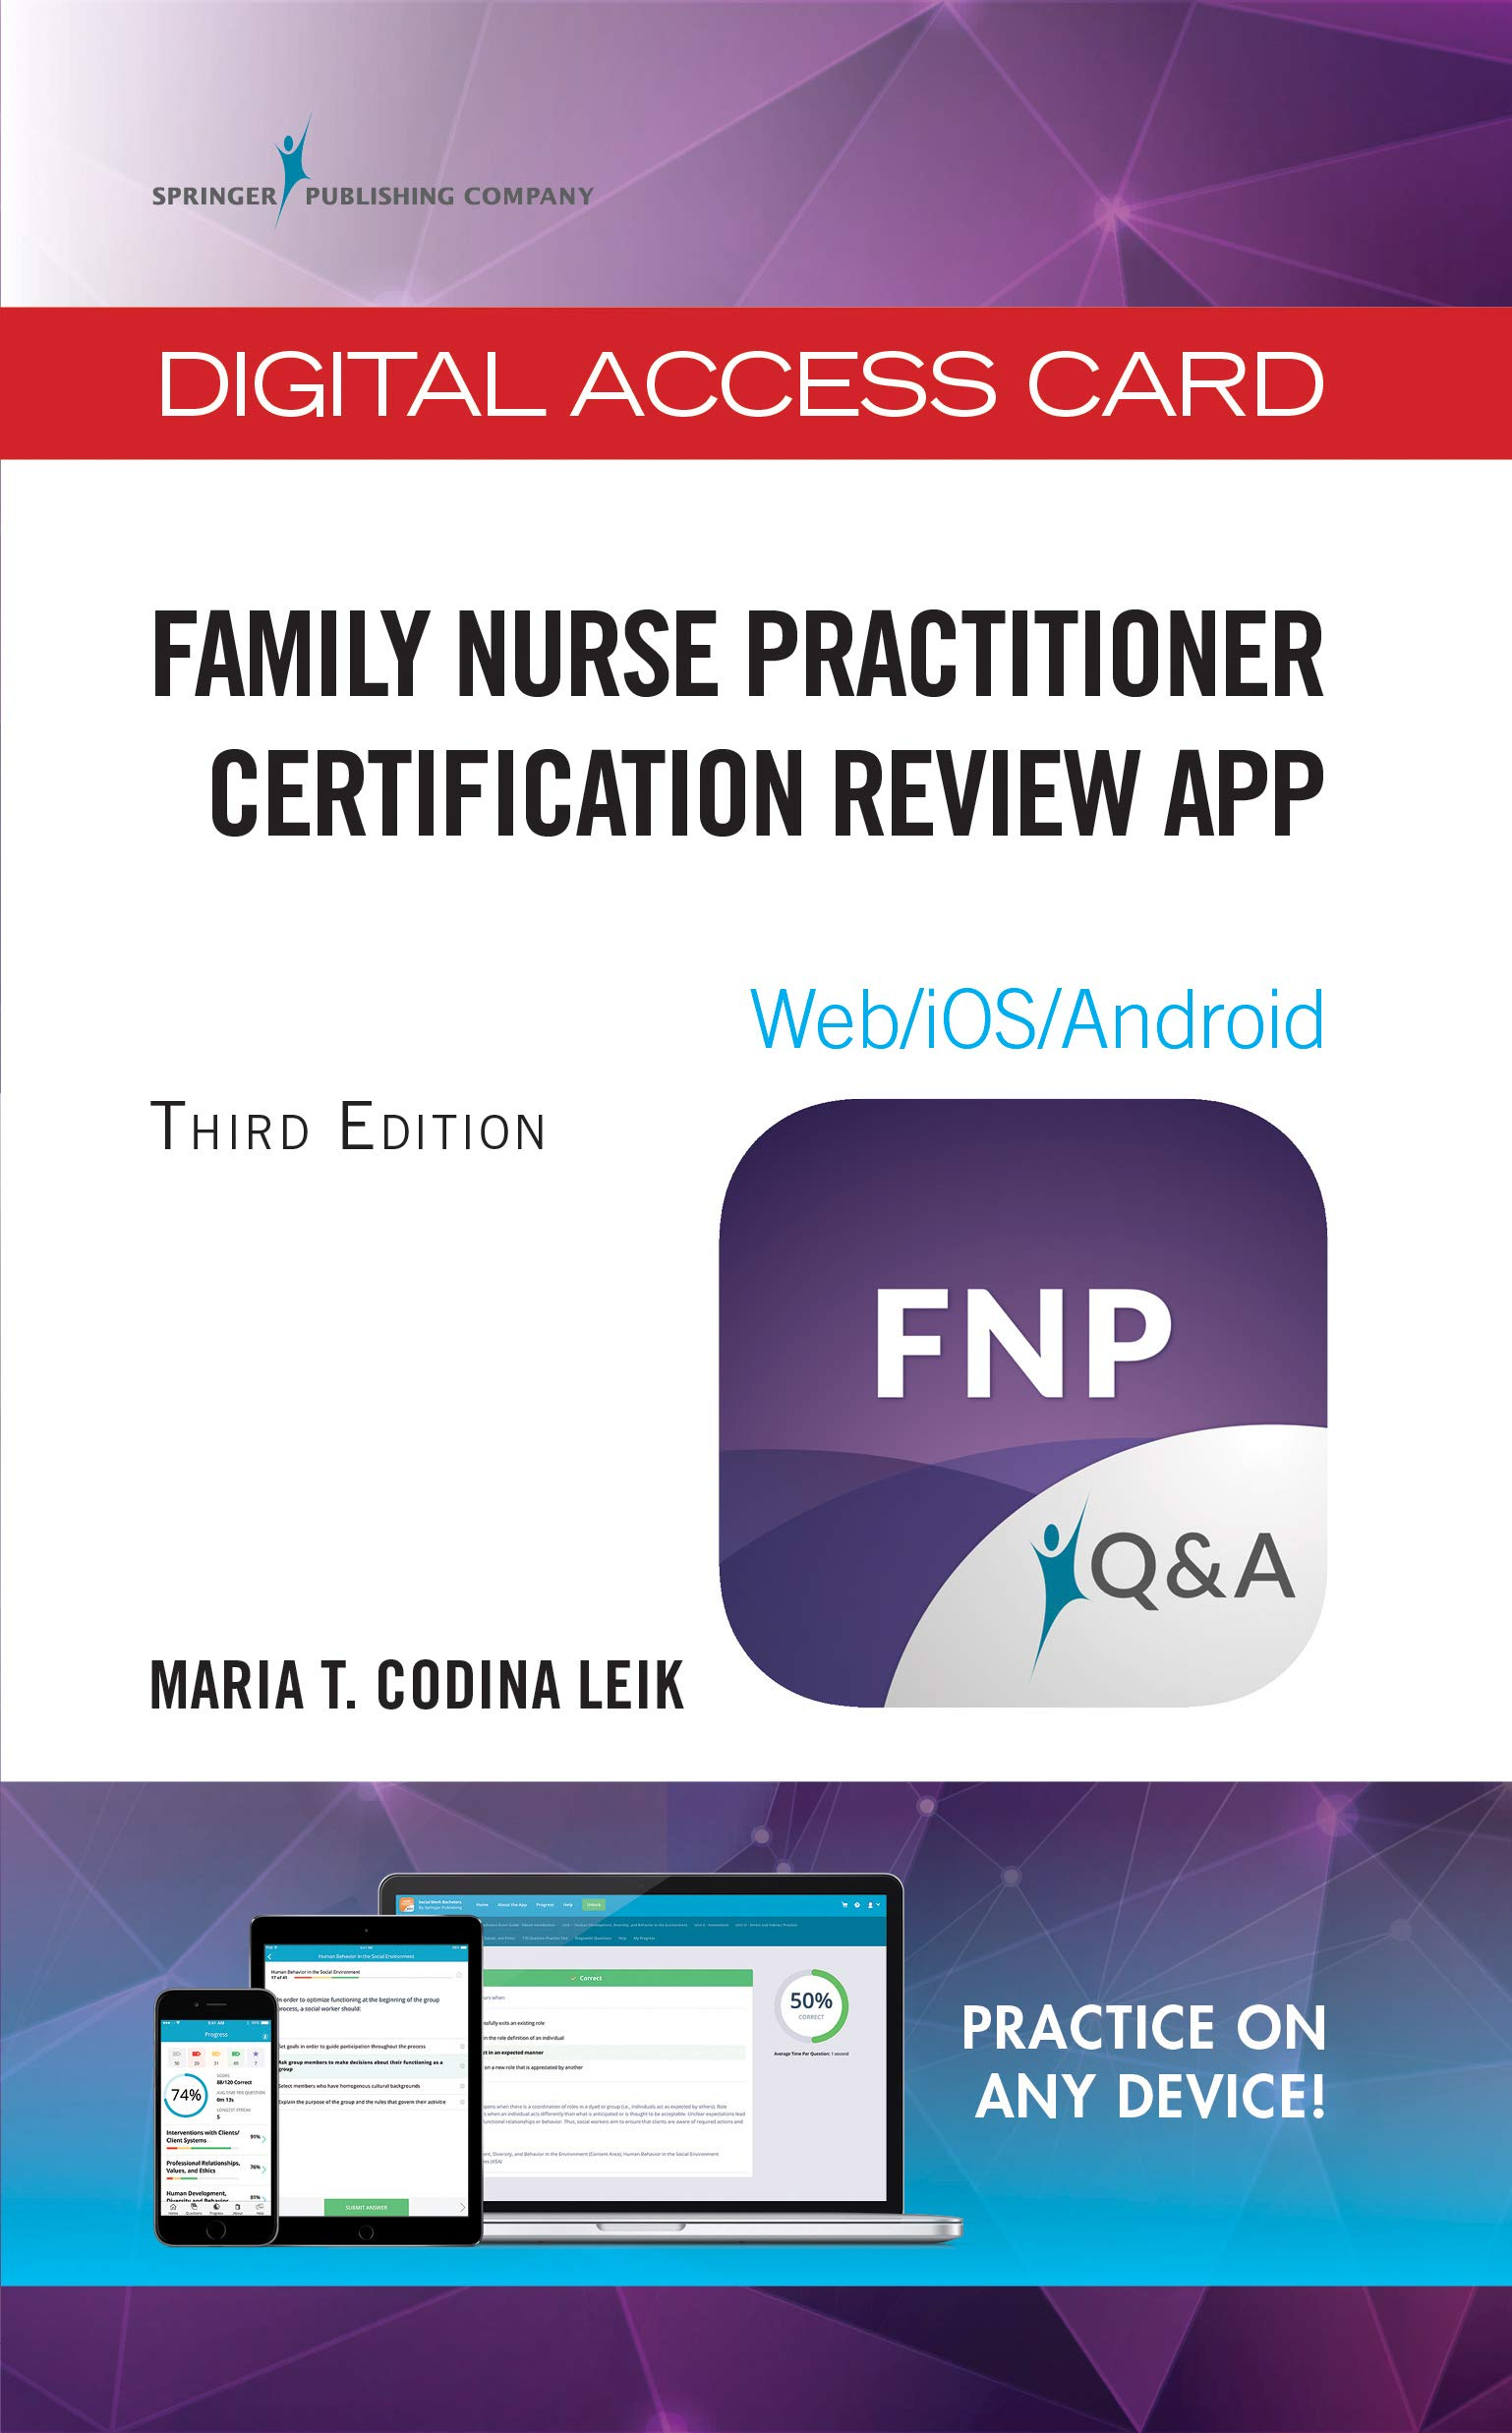 Family Nurse Practitioner Certification Review App - Digital